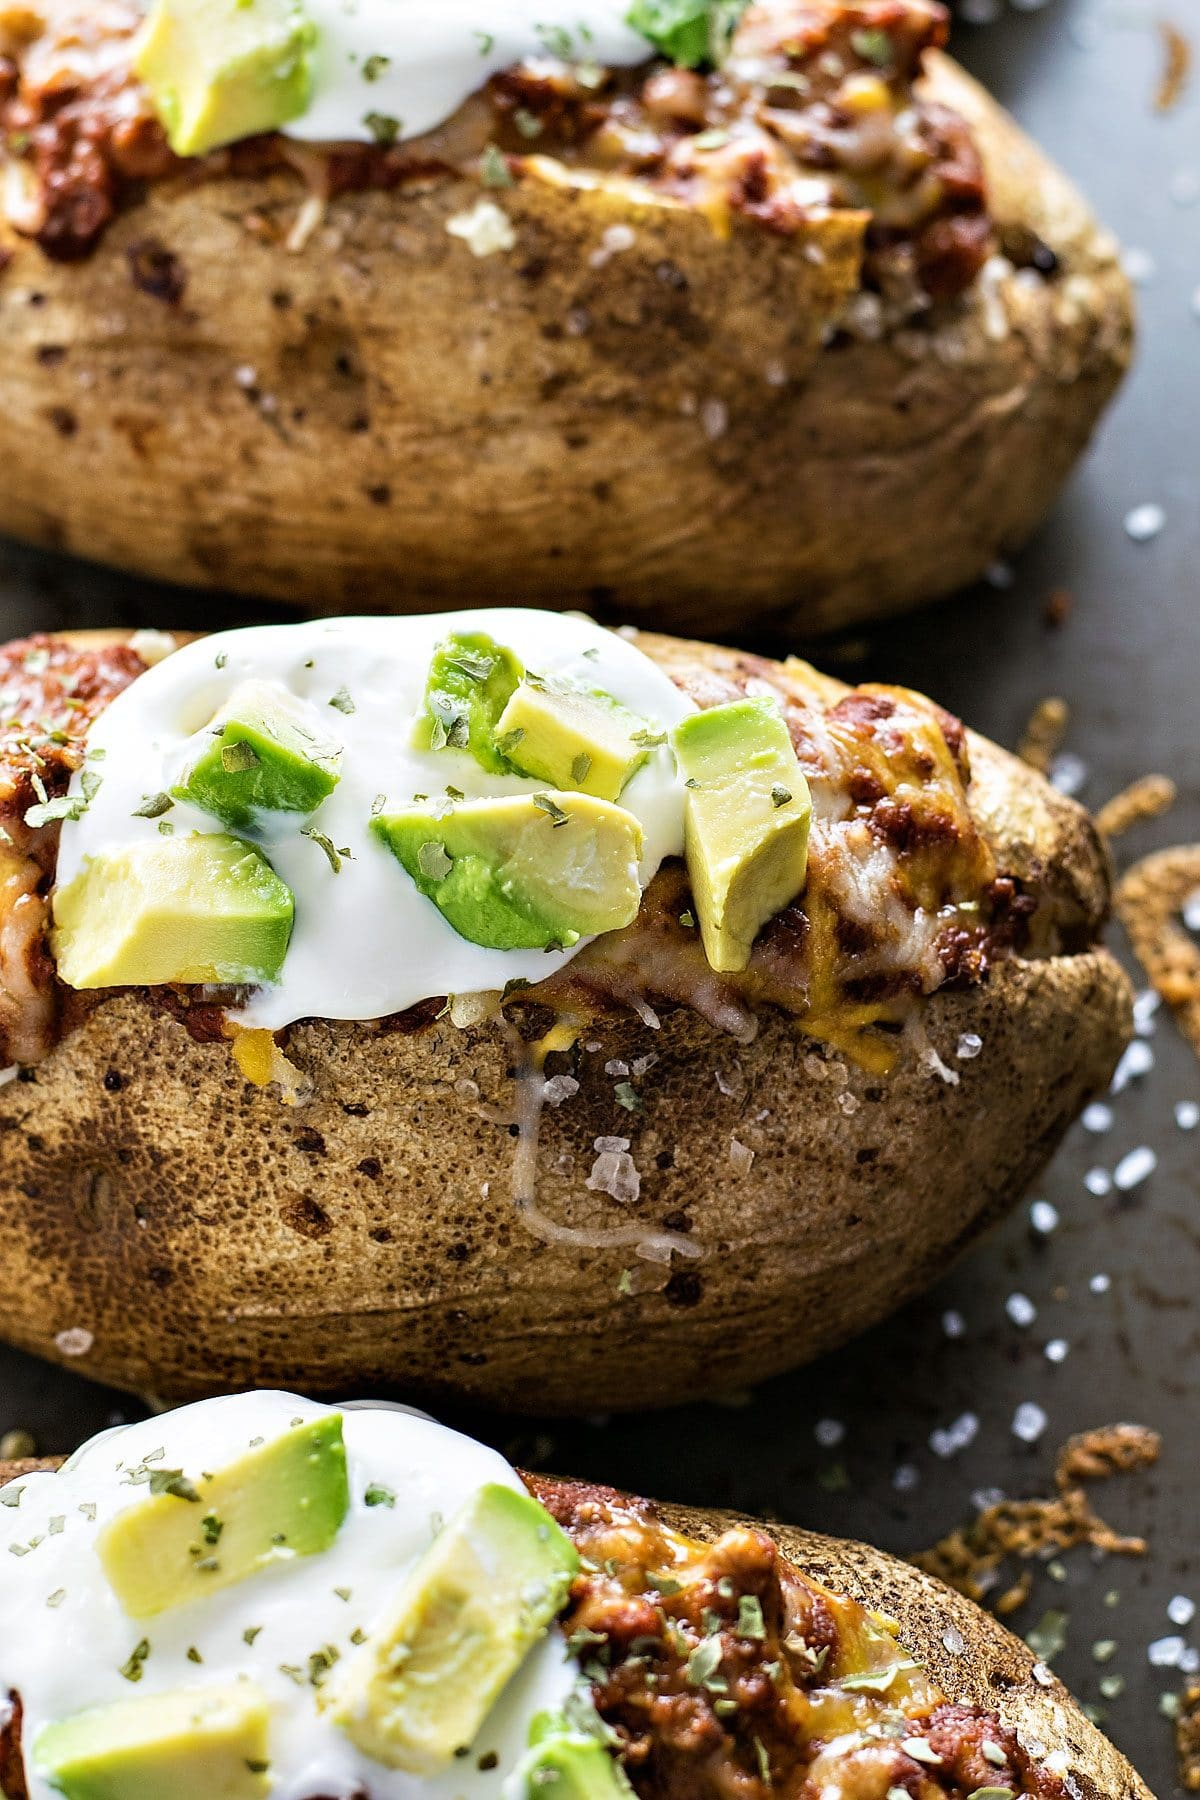 Chili Stuffed Potatoes! Chili baked potatoes filled with Hormel Chili and Mexican cheese then topped with sour cream, avocado, and cilantro. Easy to make and a perfect for a party! #spon #HormelChiliNation | HomemadeHooplah.com